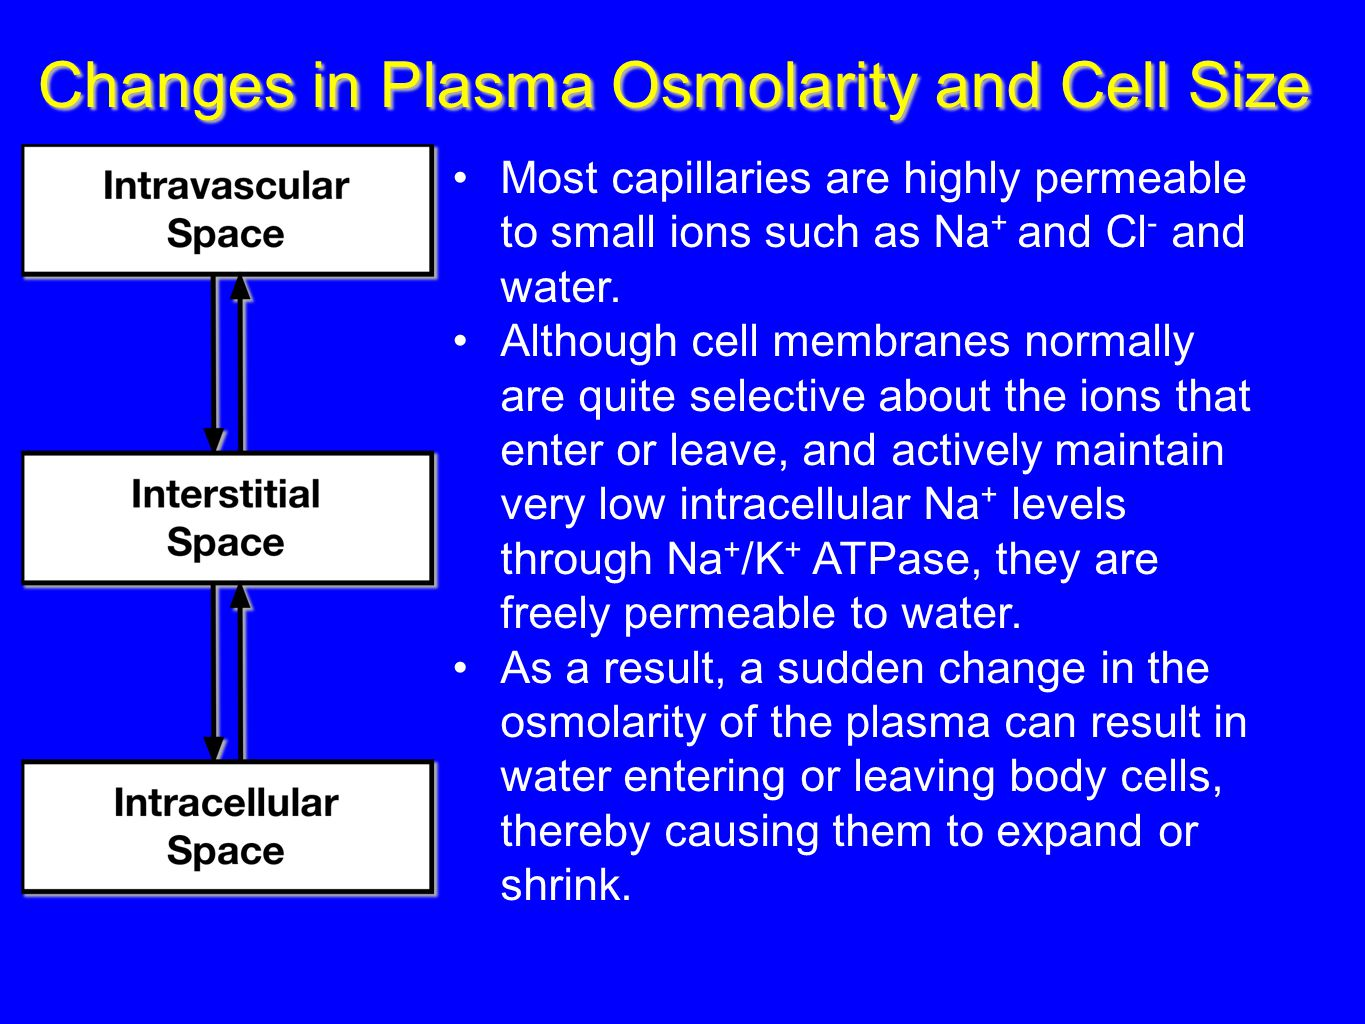 Changes in Plasma Osmolarity and Cell Size